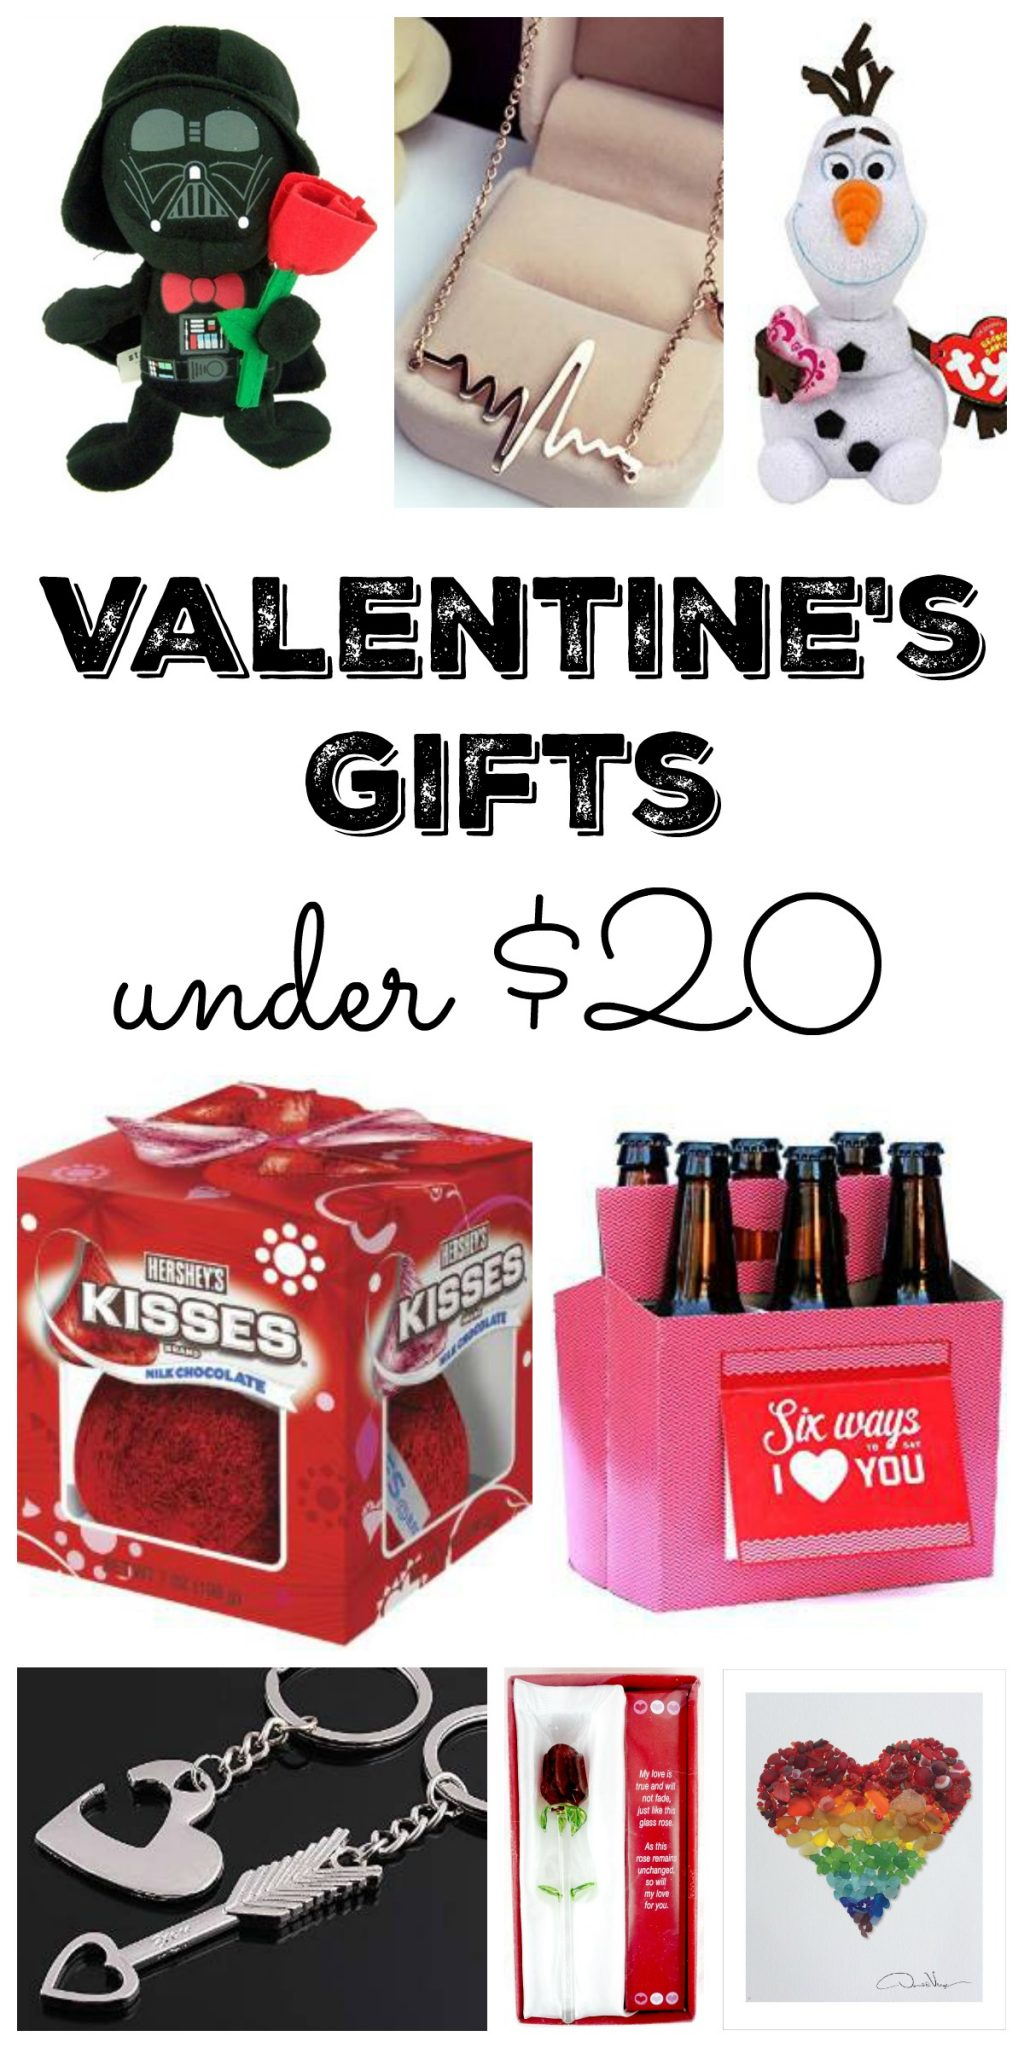 Great ideas for Valentine's gifts under $20! Get inspired to get something for your love even if you are on a budget! Great ideas for Valentine's Day!